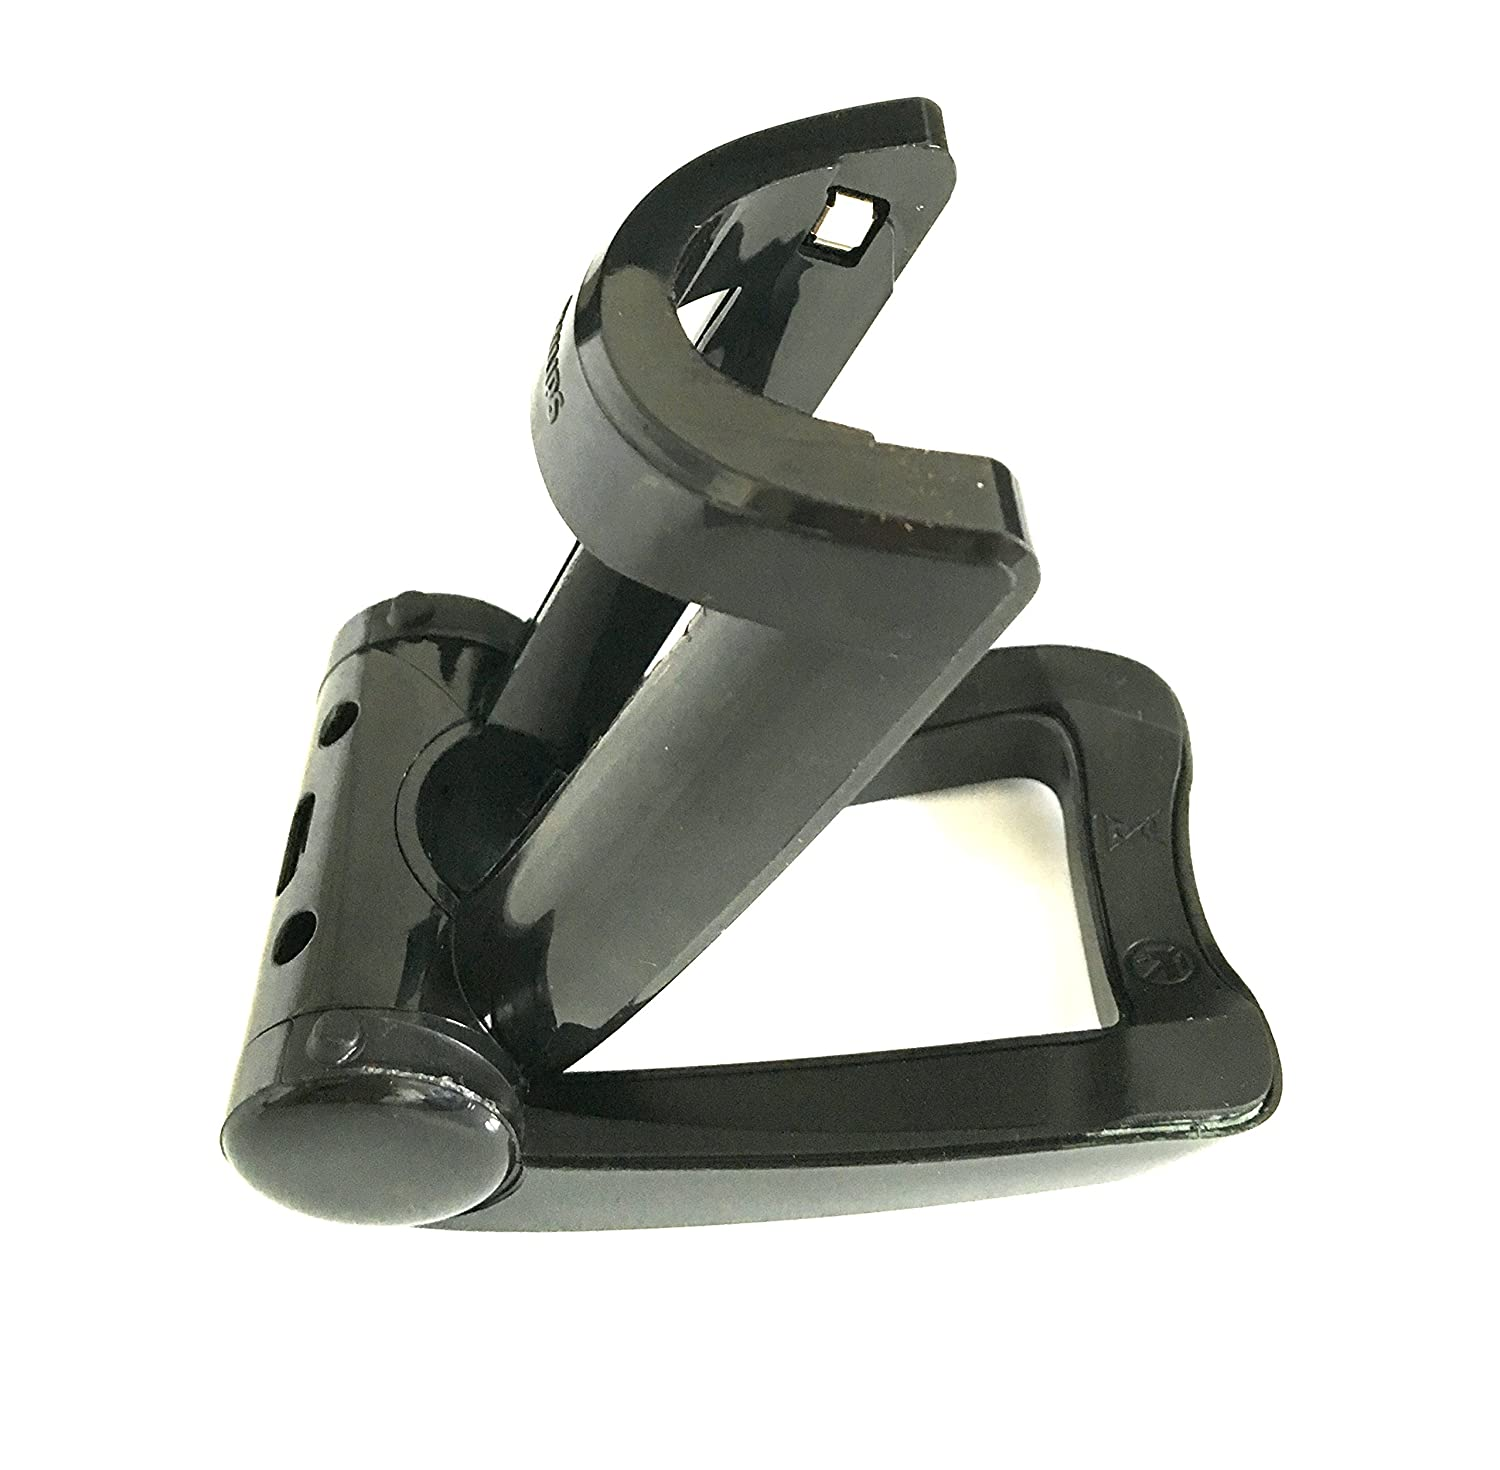 MR SHAVE Super popular specialty store We OFFer at cheap prices Replacement Charging Stand S 1200 Replacing Norelco for